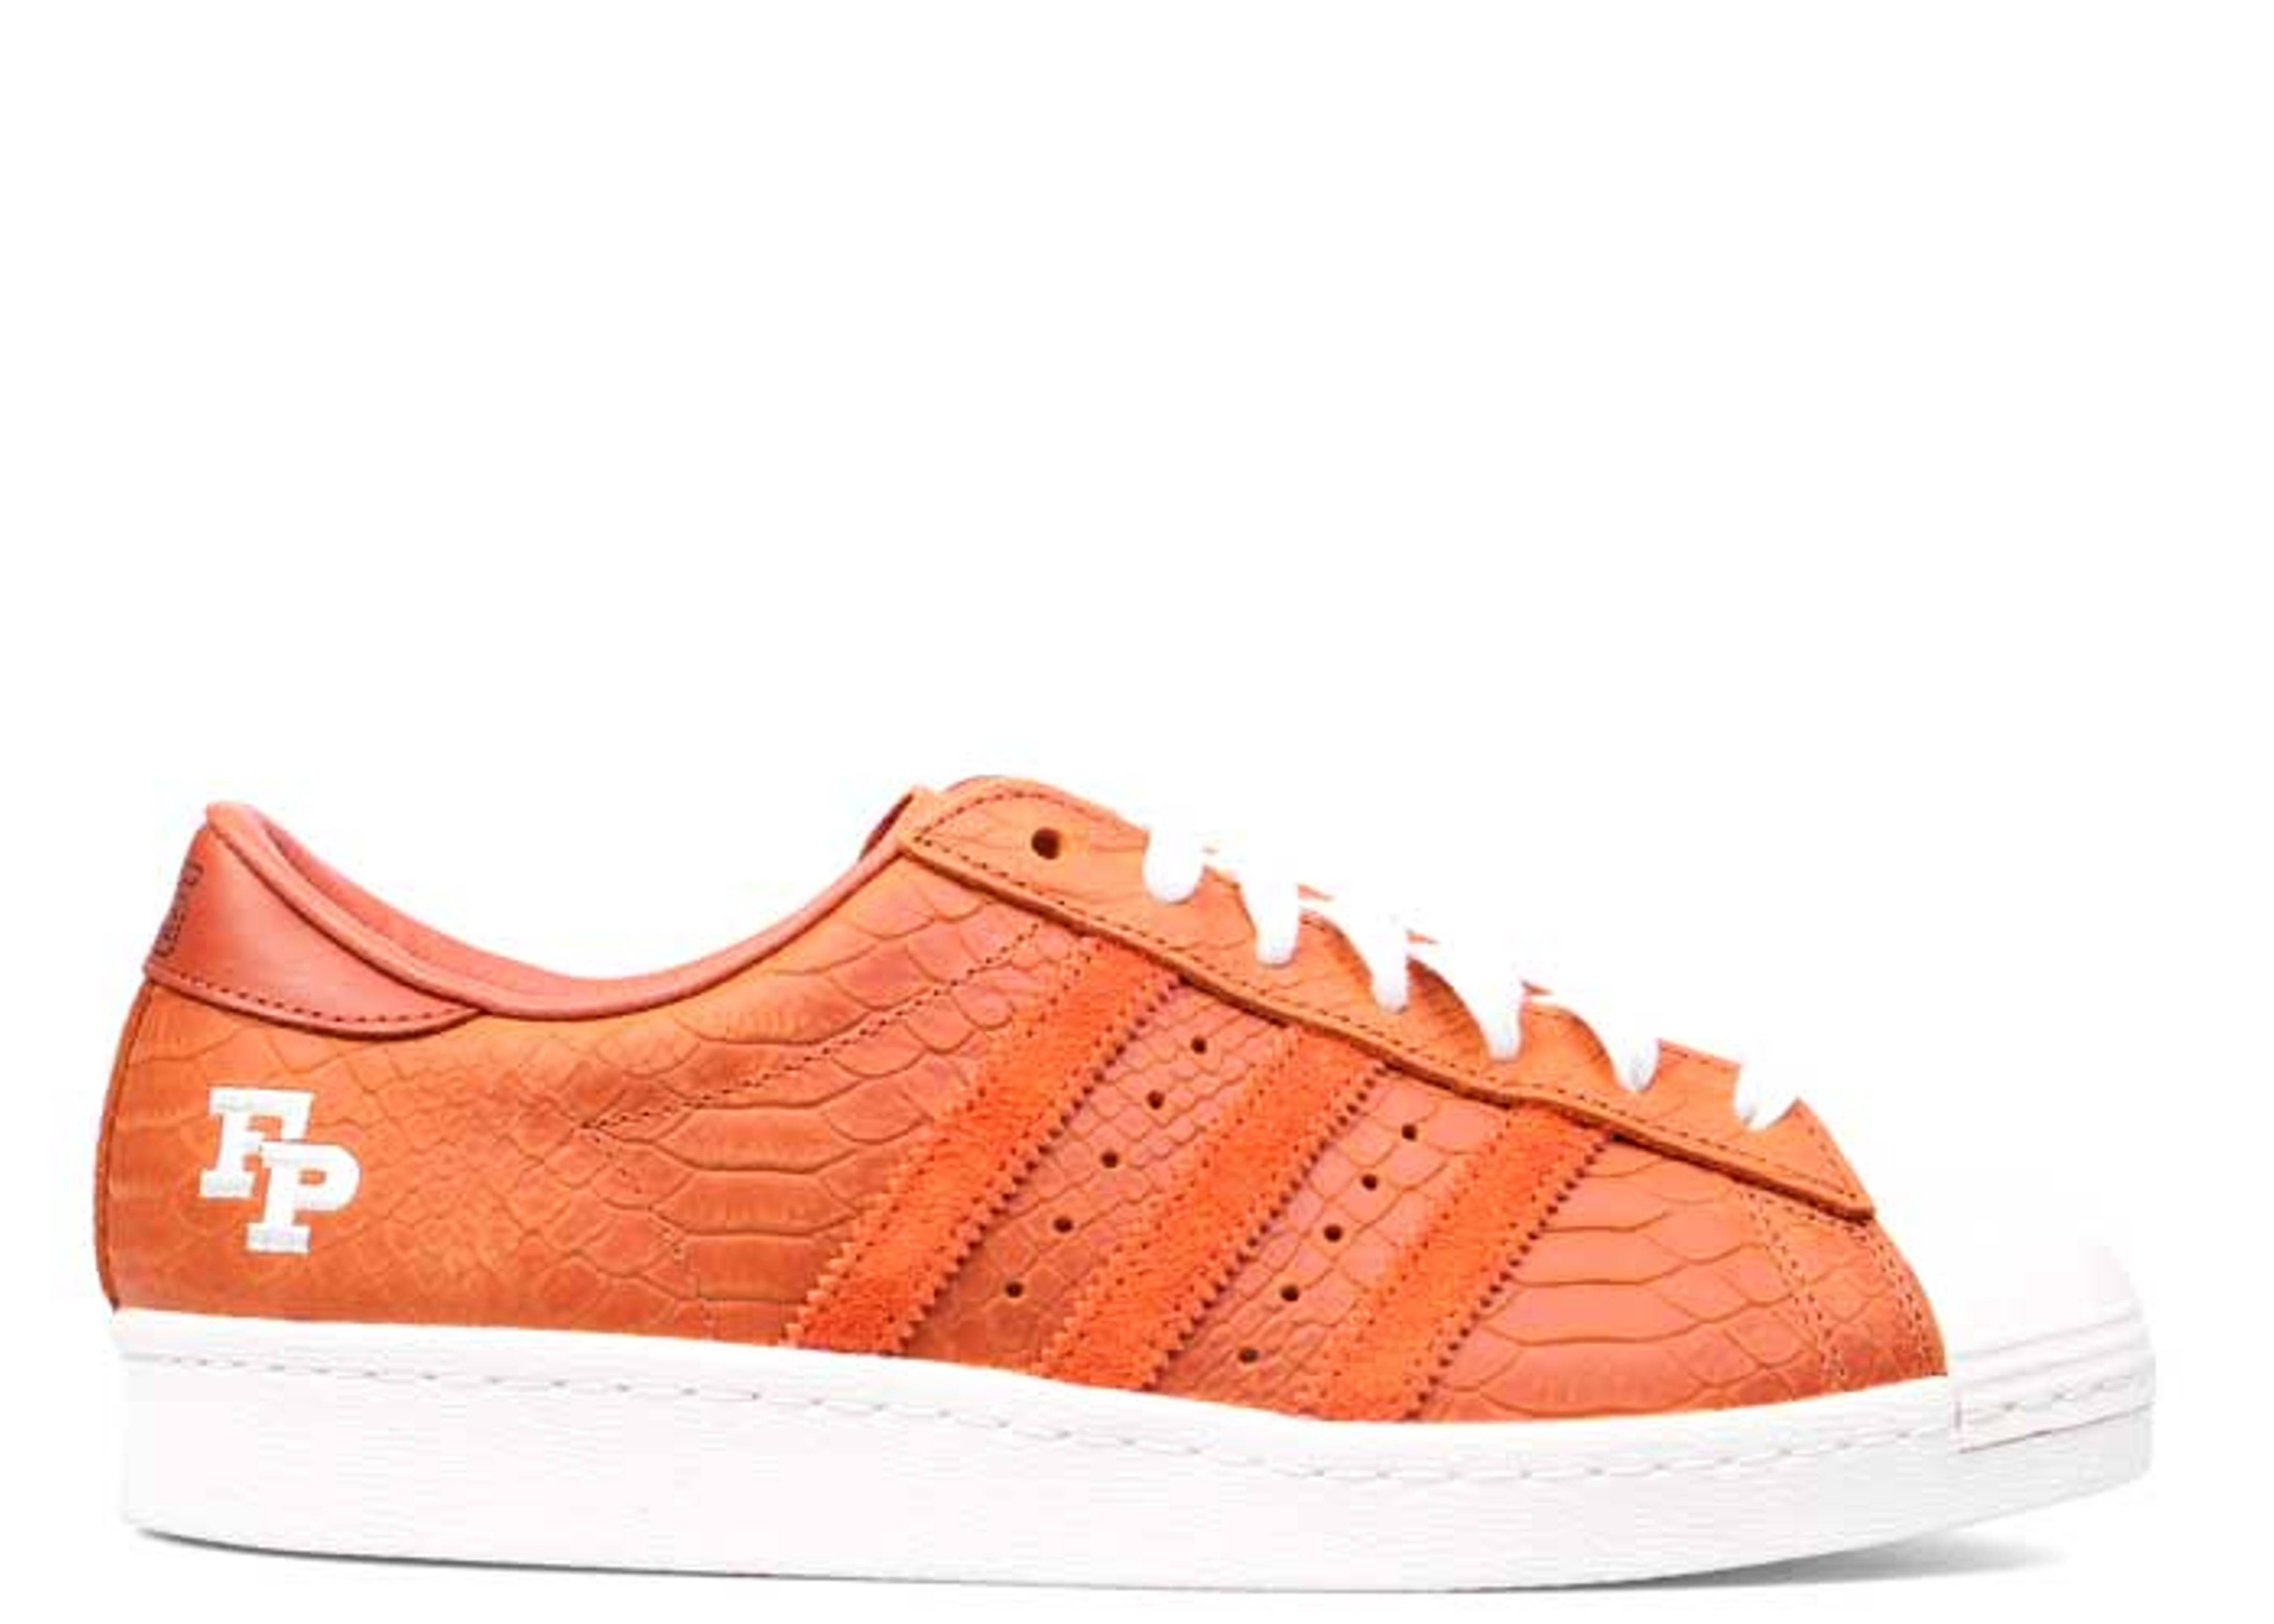 adidas Superstar 80v FP foxred/foxred/Cwhite Kaufen Online-Shop